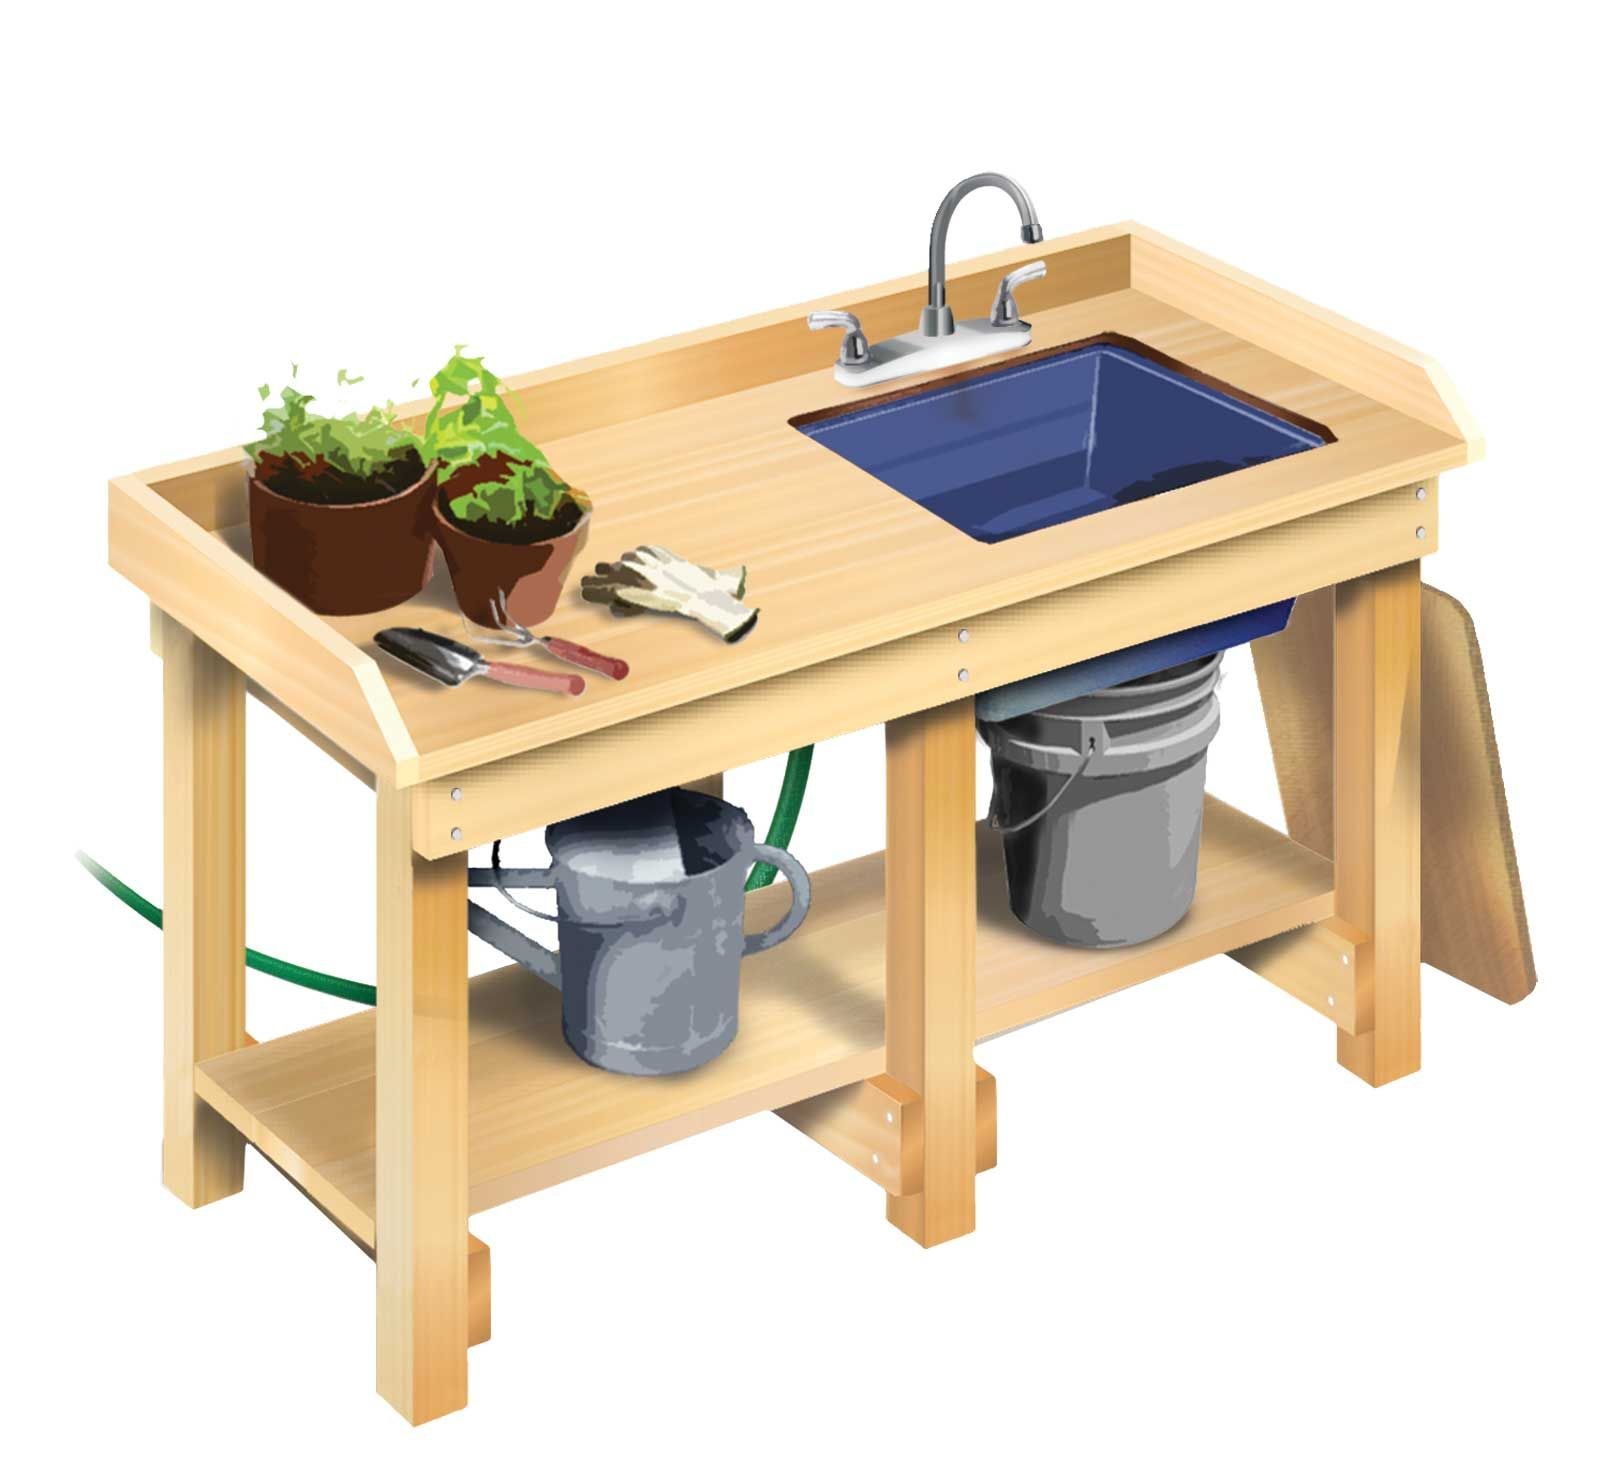 How To Build A Workbench/Gardenbench   DIY   MOTHER EARTH NEWS